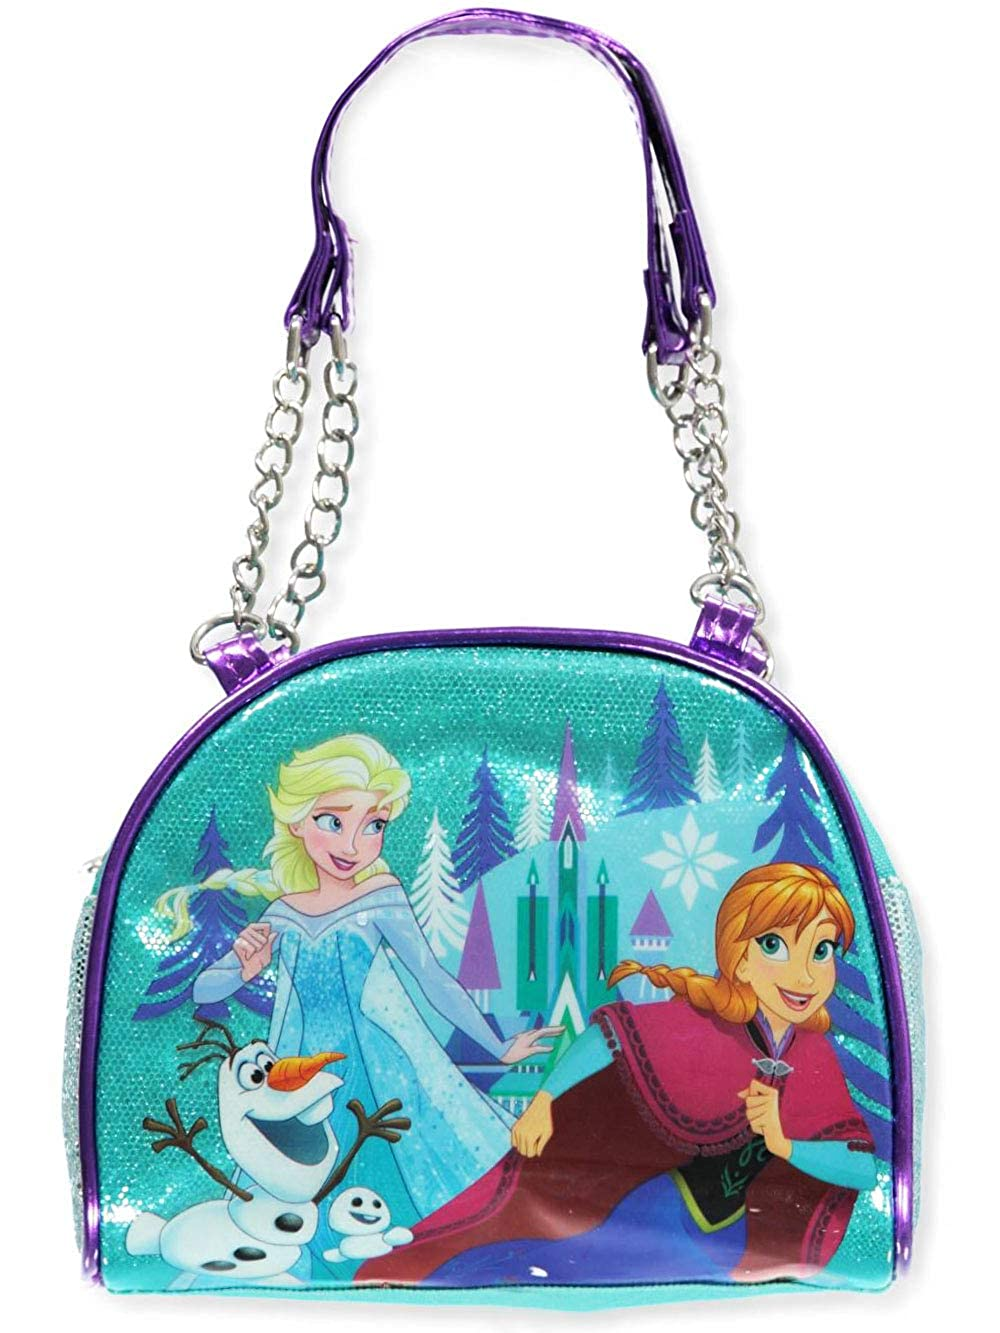 Amazon.com: Monedero de Disney Frozen con Anna, Elsa y Olaf ...